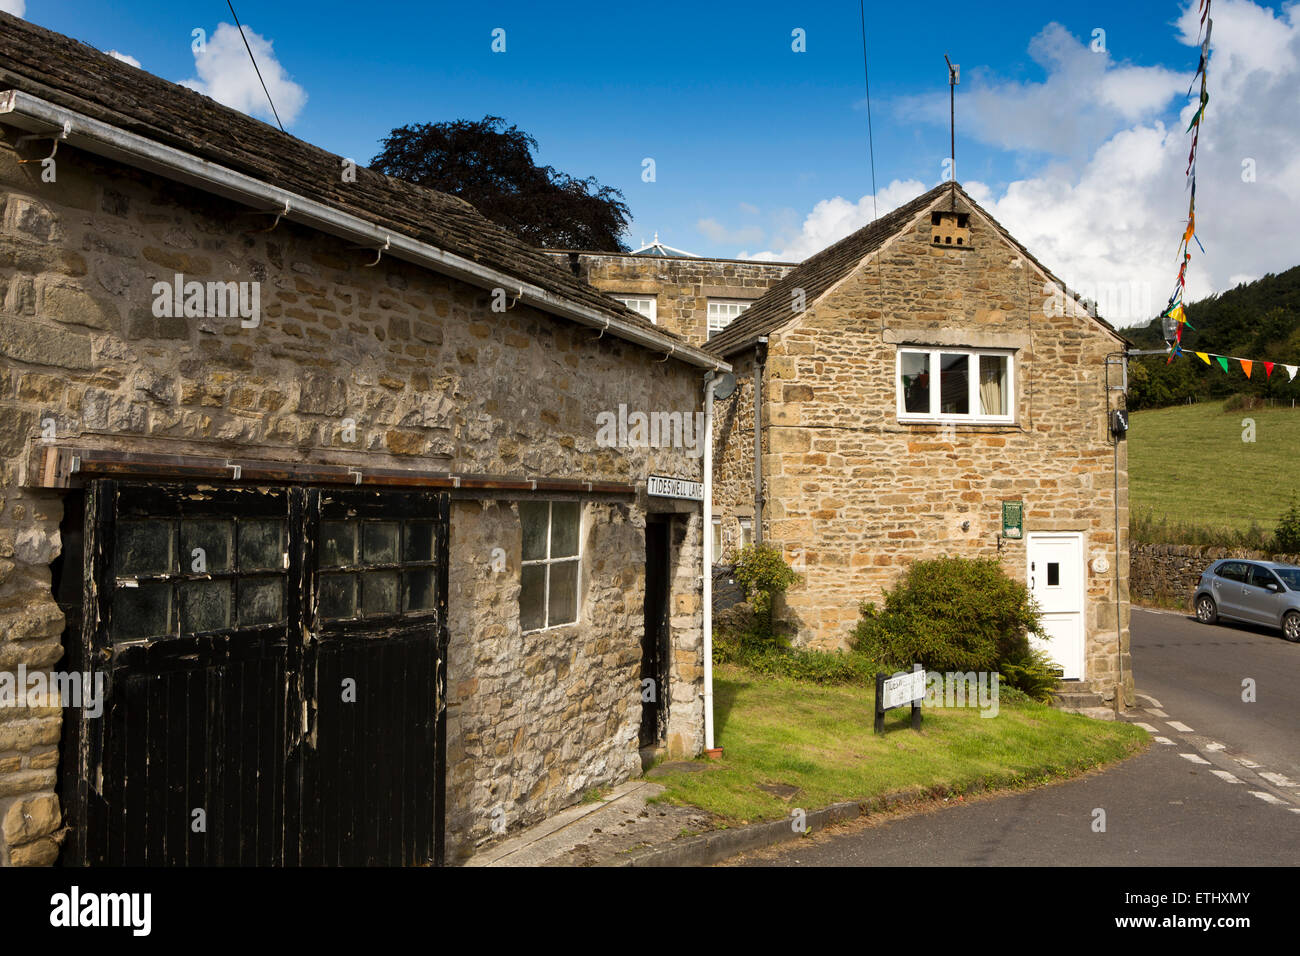 UK, England, Derbyshire, Eyam, Townhead, Tideswell Lane Ralph Wain's1735 silk weaving factory, with dovecote in - Stock Image